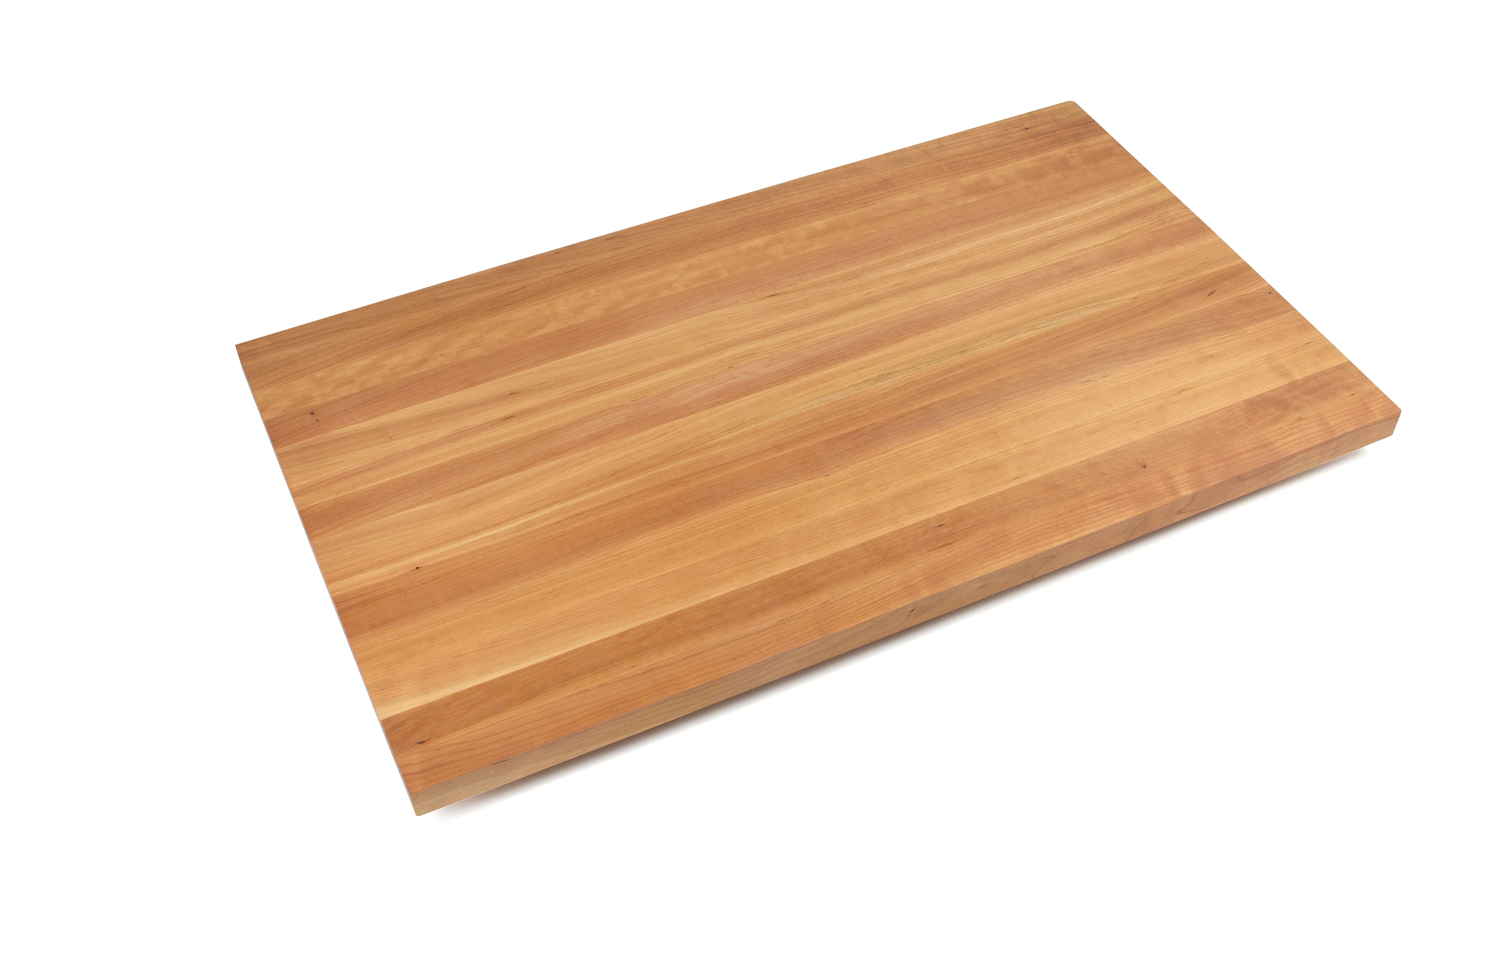 1.5 inch thick cherry edge grain butcher block countertop 32 inches wide